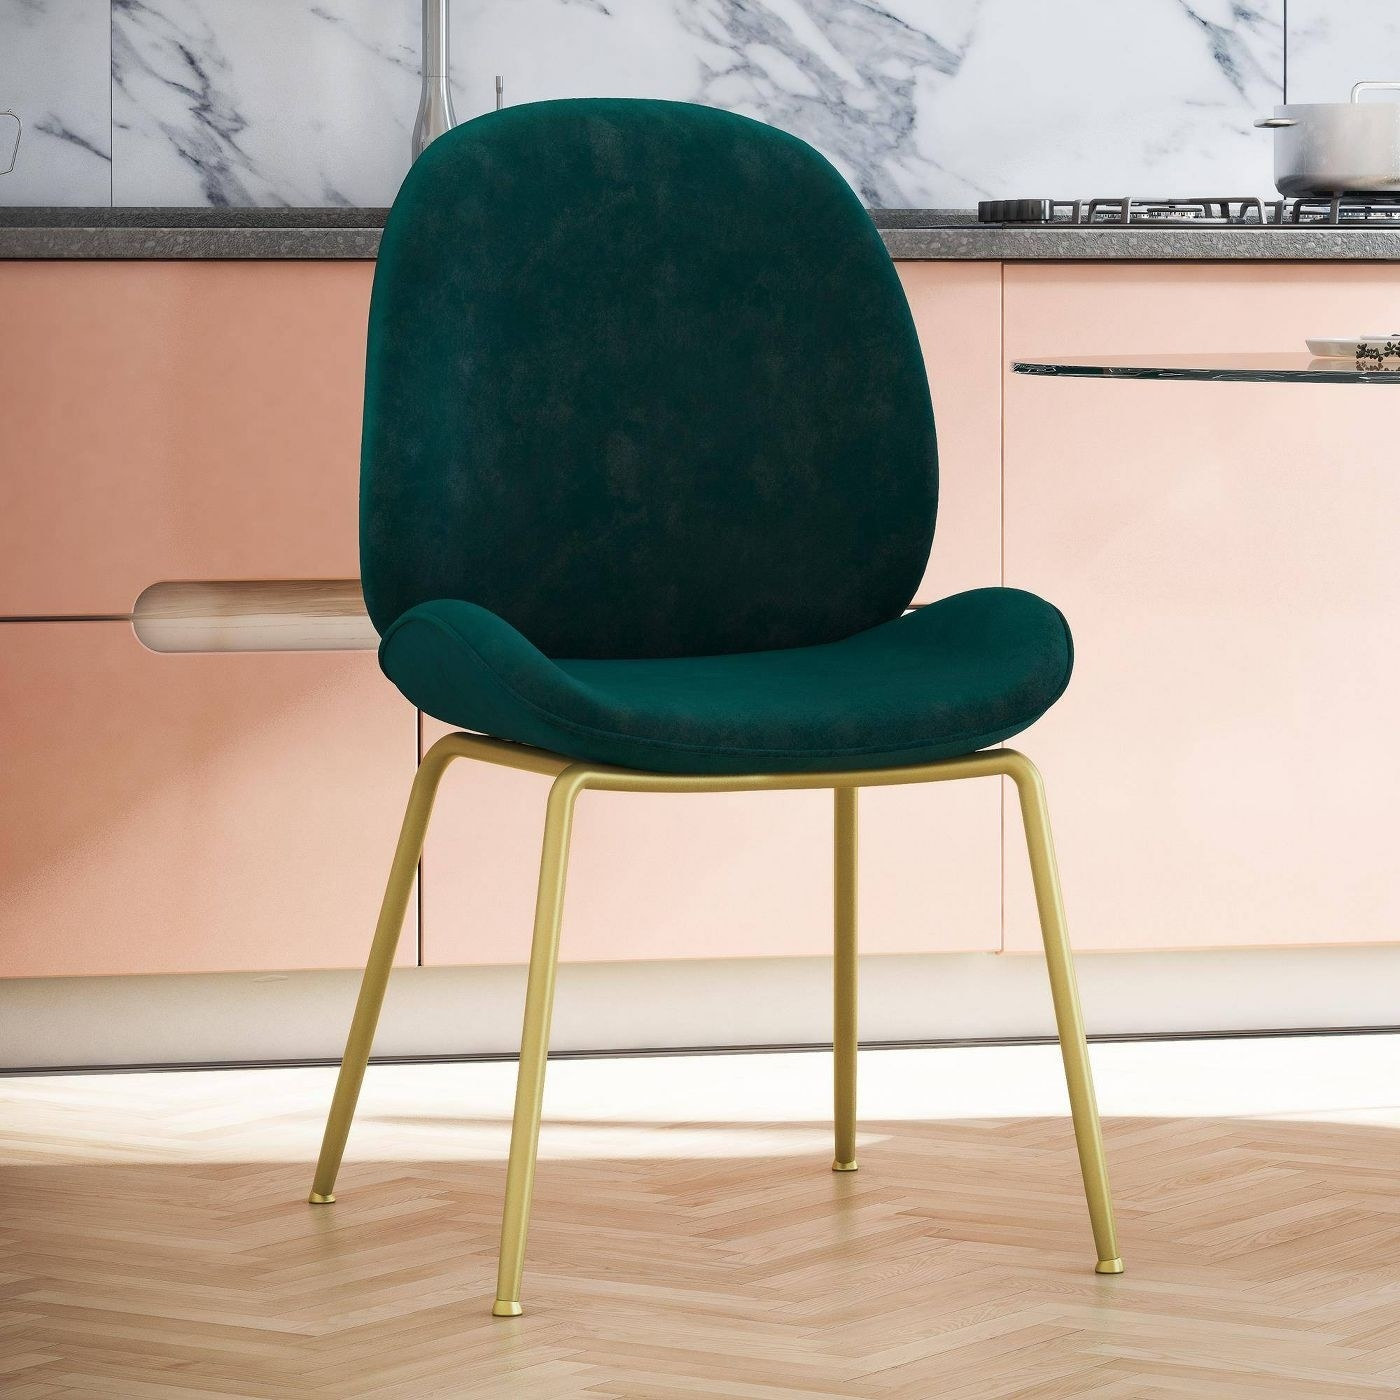 The green dining chair